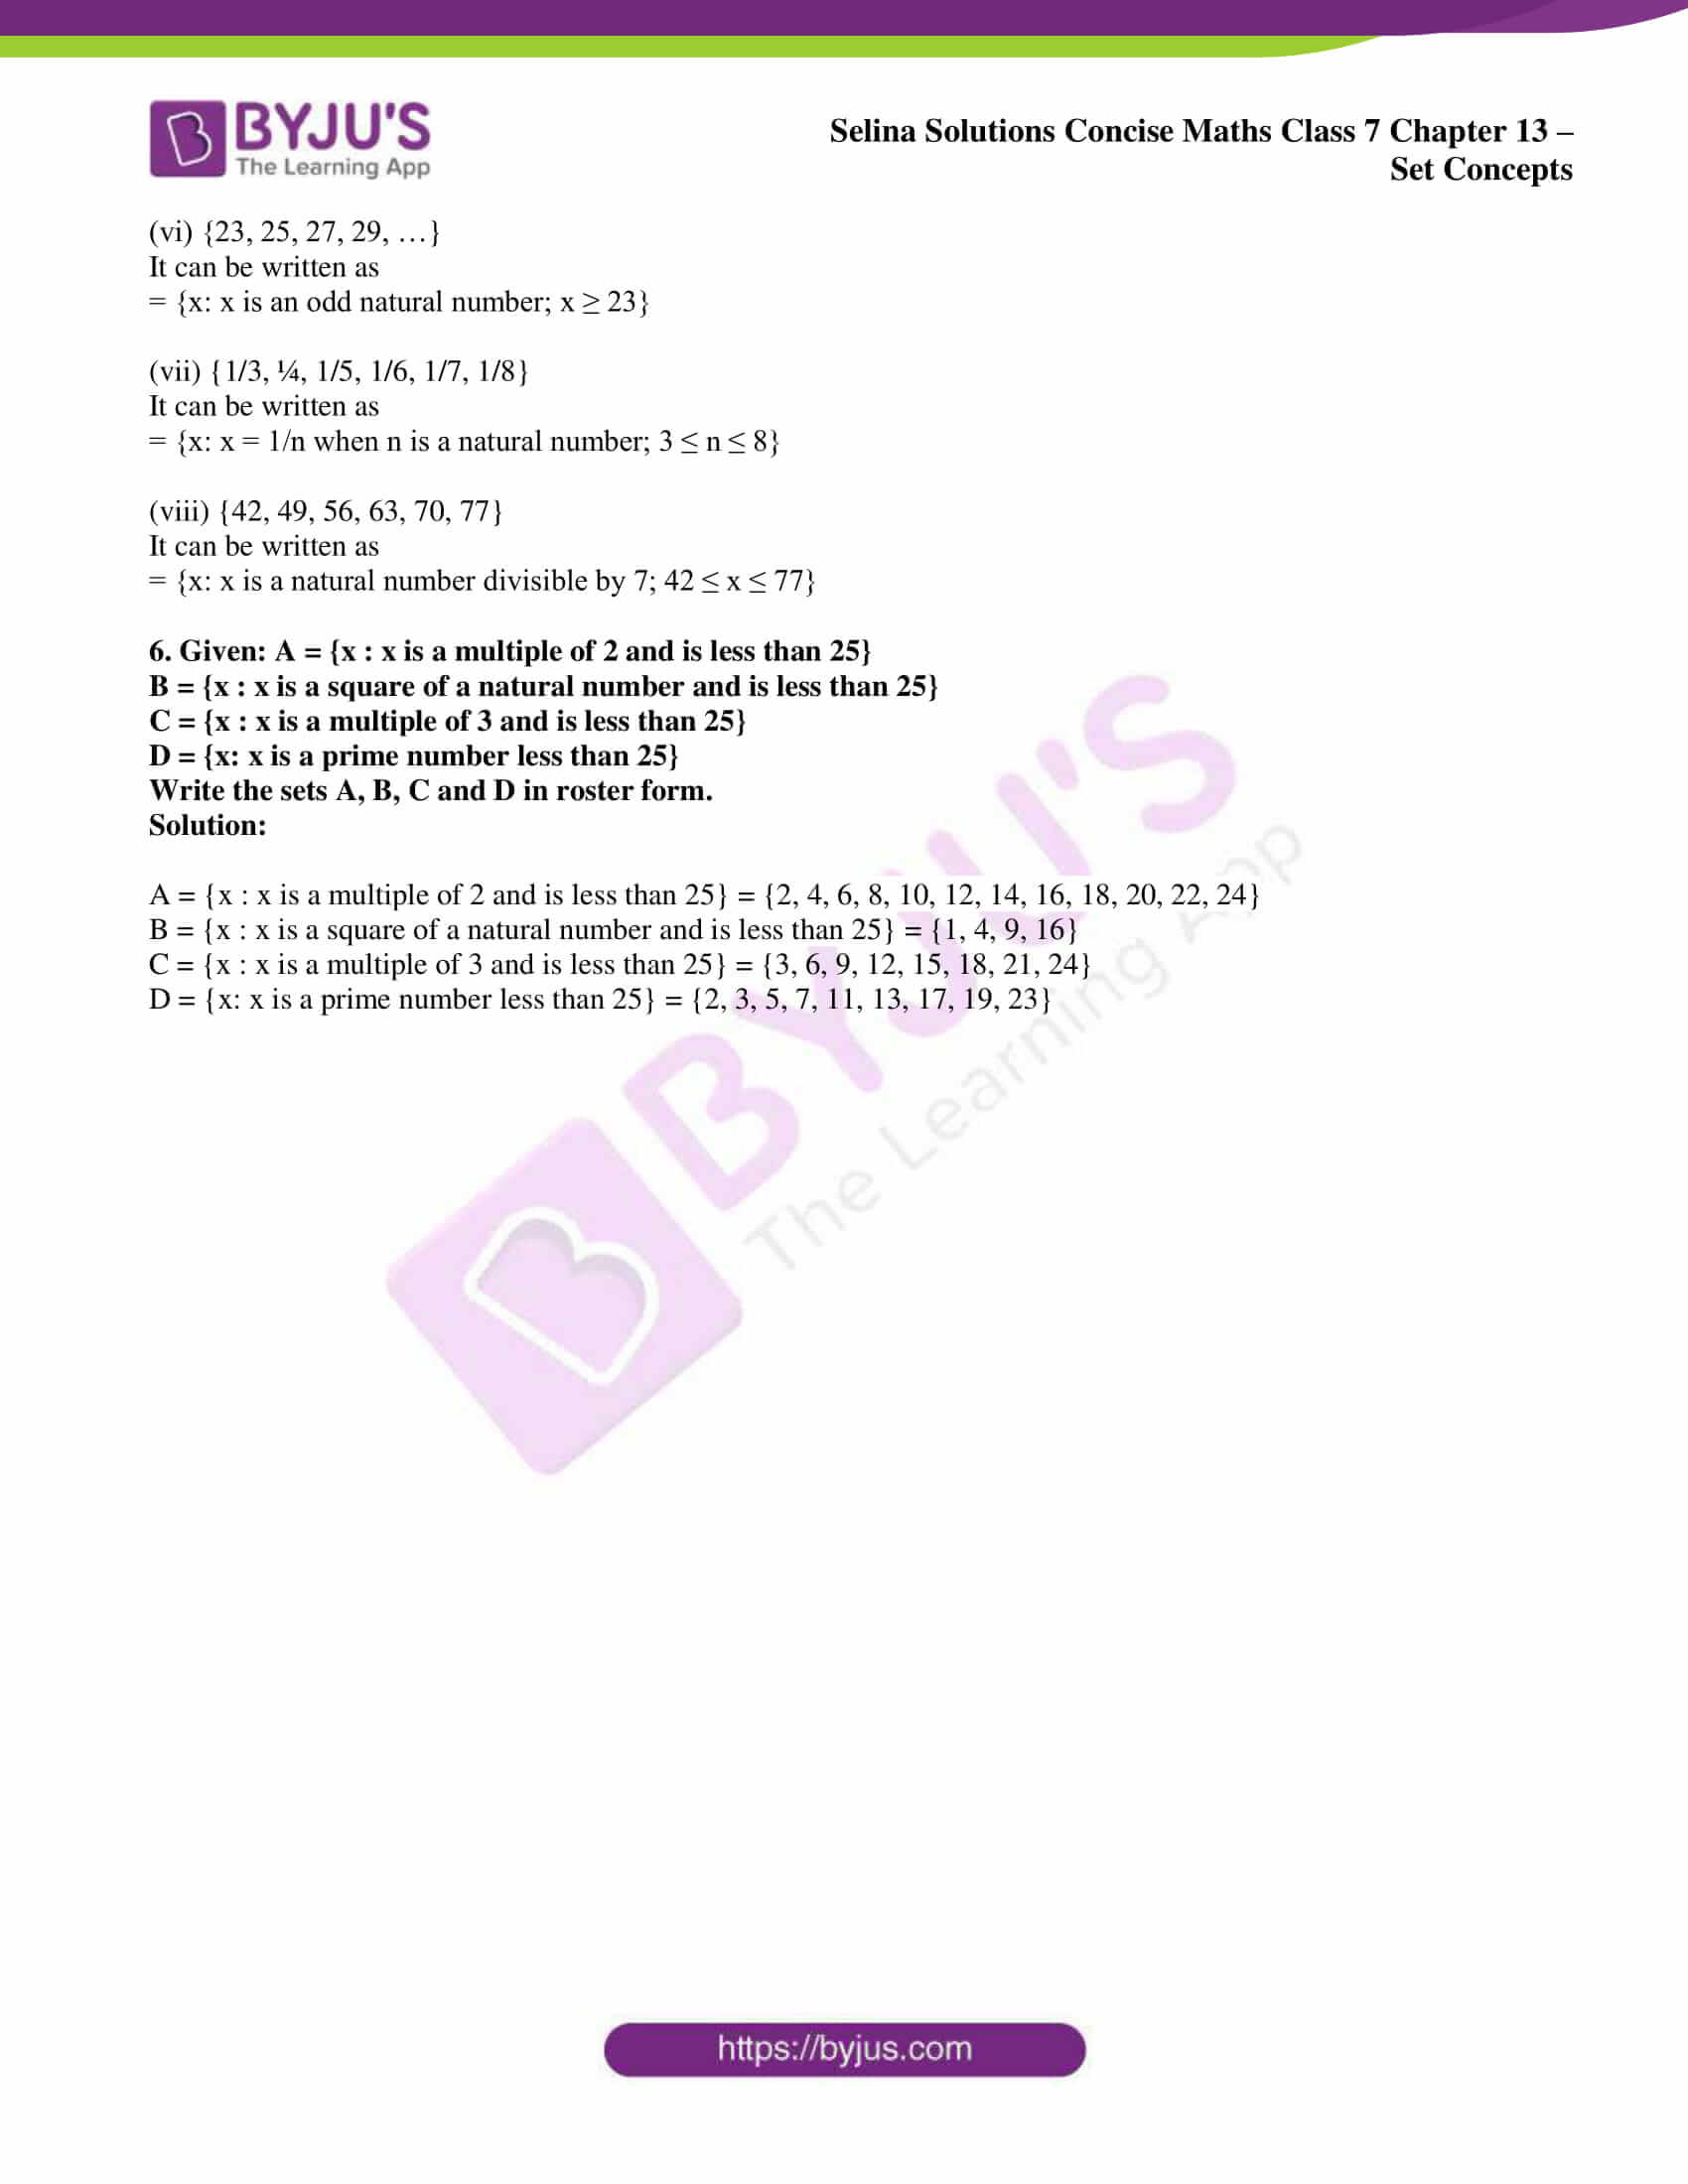 selina solution concise maths class 7 ch 13a 4